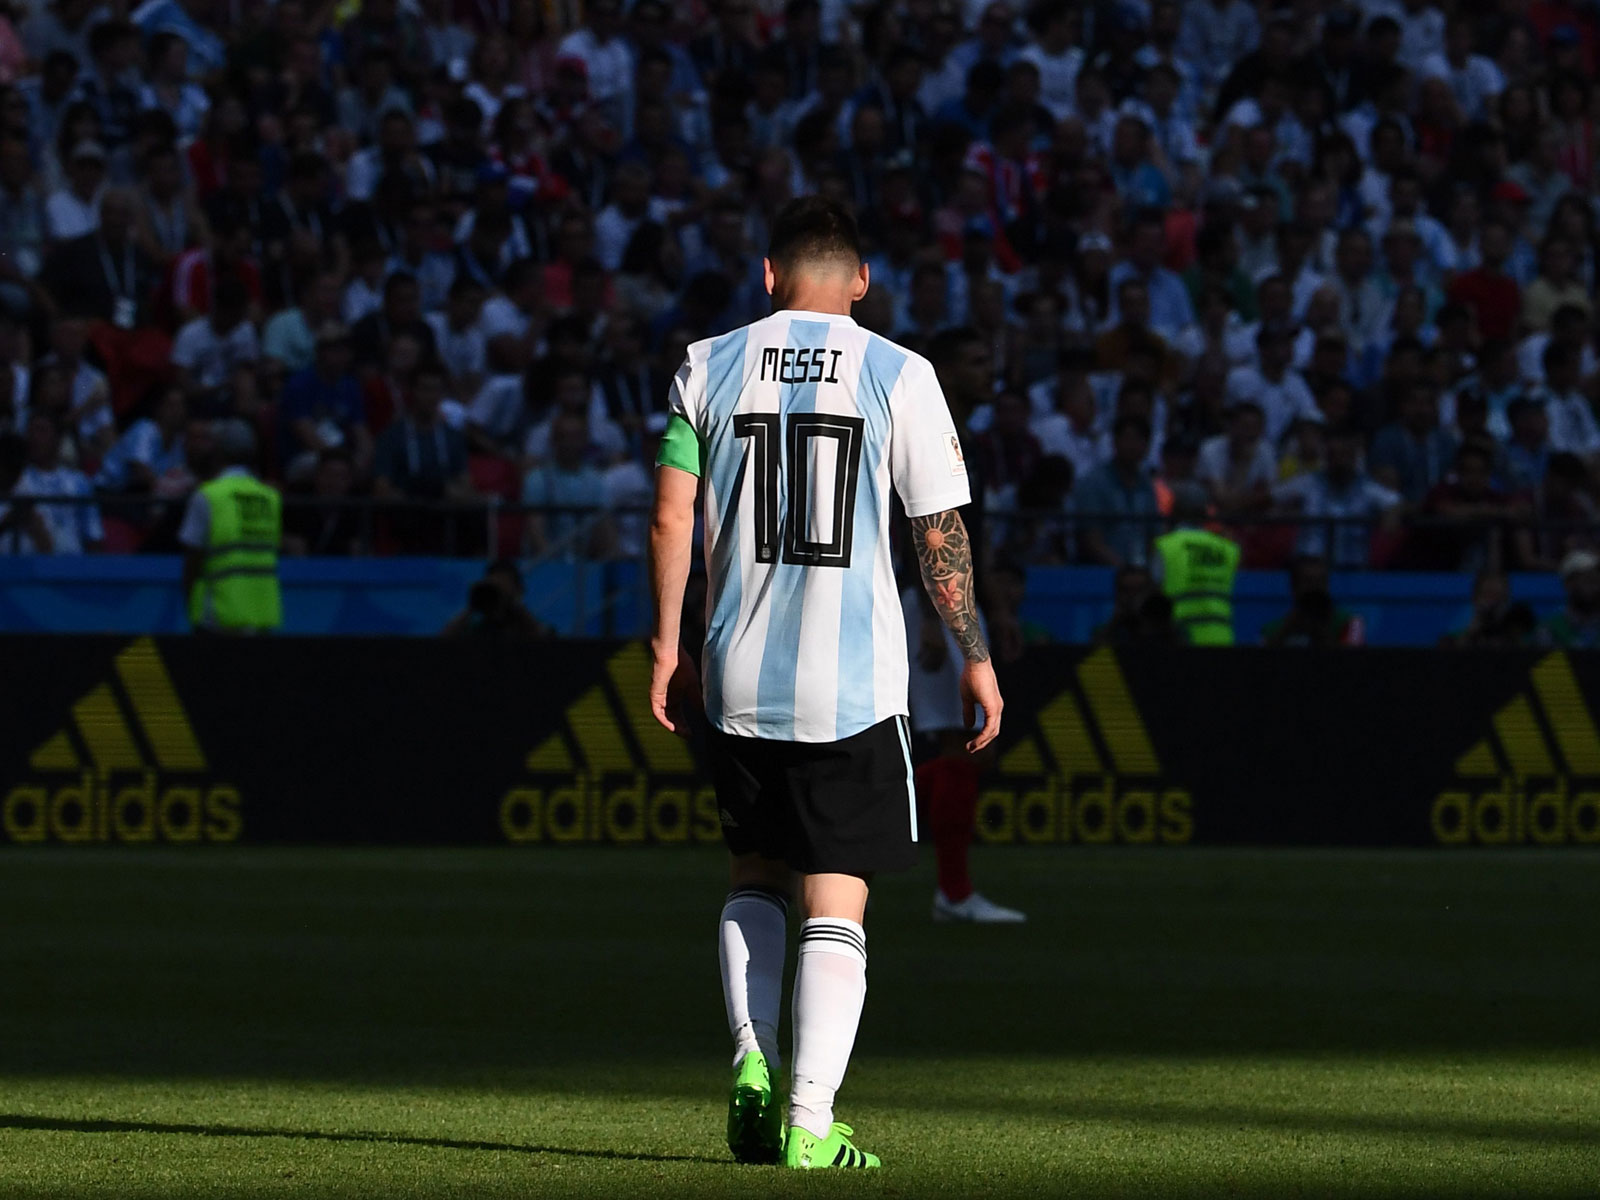 Lionel Messi is returning to Argentina's national team